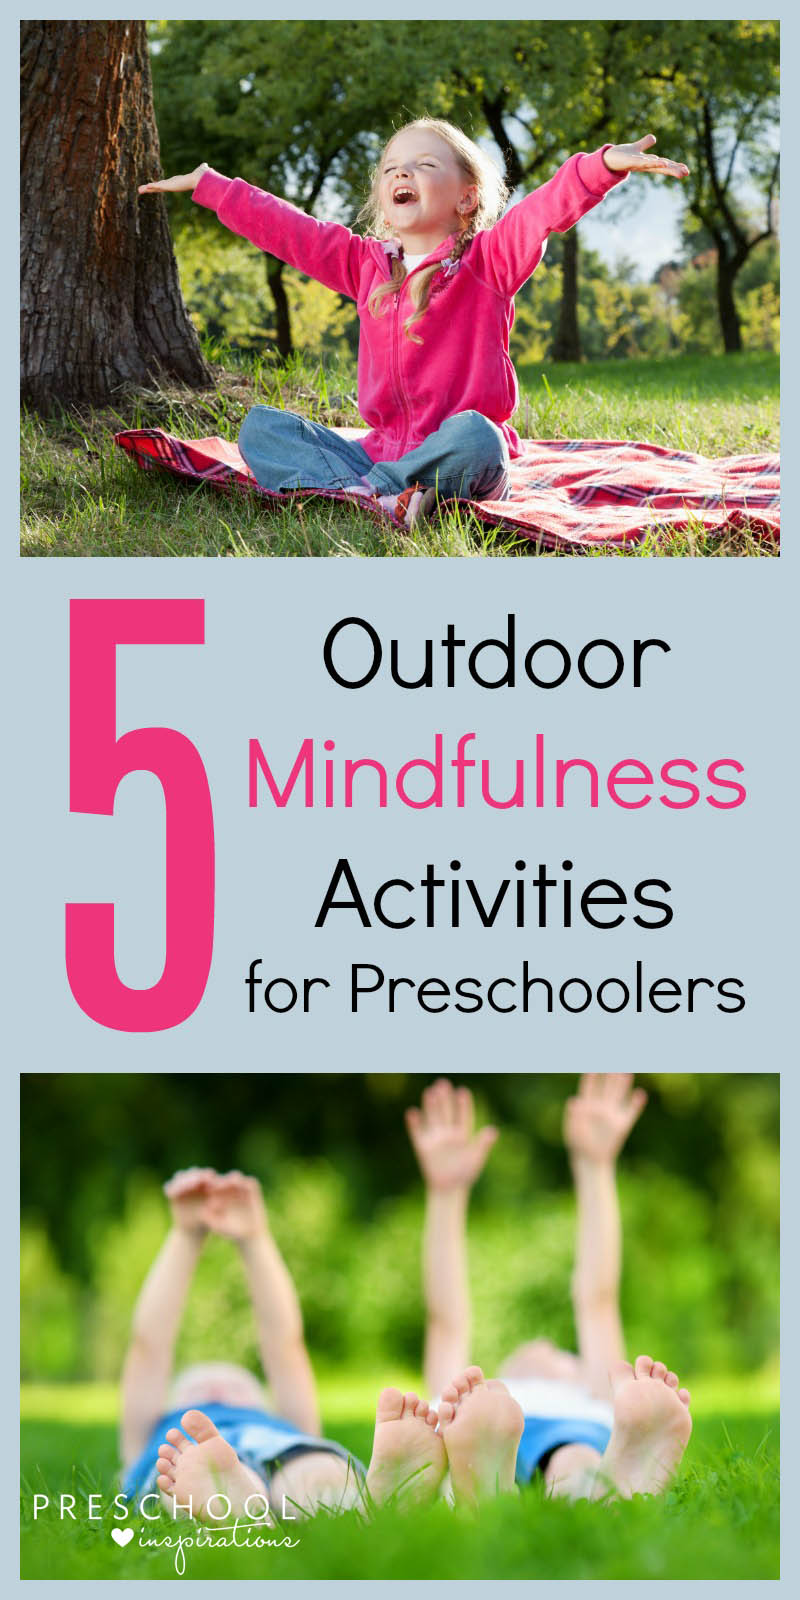 5 Outdoor Mindfulness Activities for Preschoolers. Try these fun and relaxing after-school activities for kids. From Preschool Inspirations.